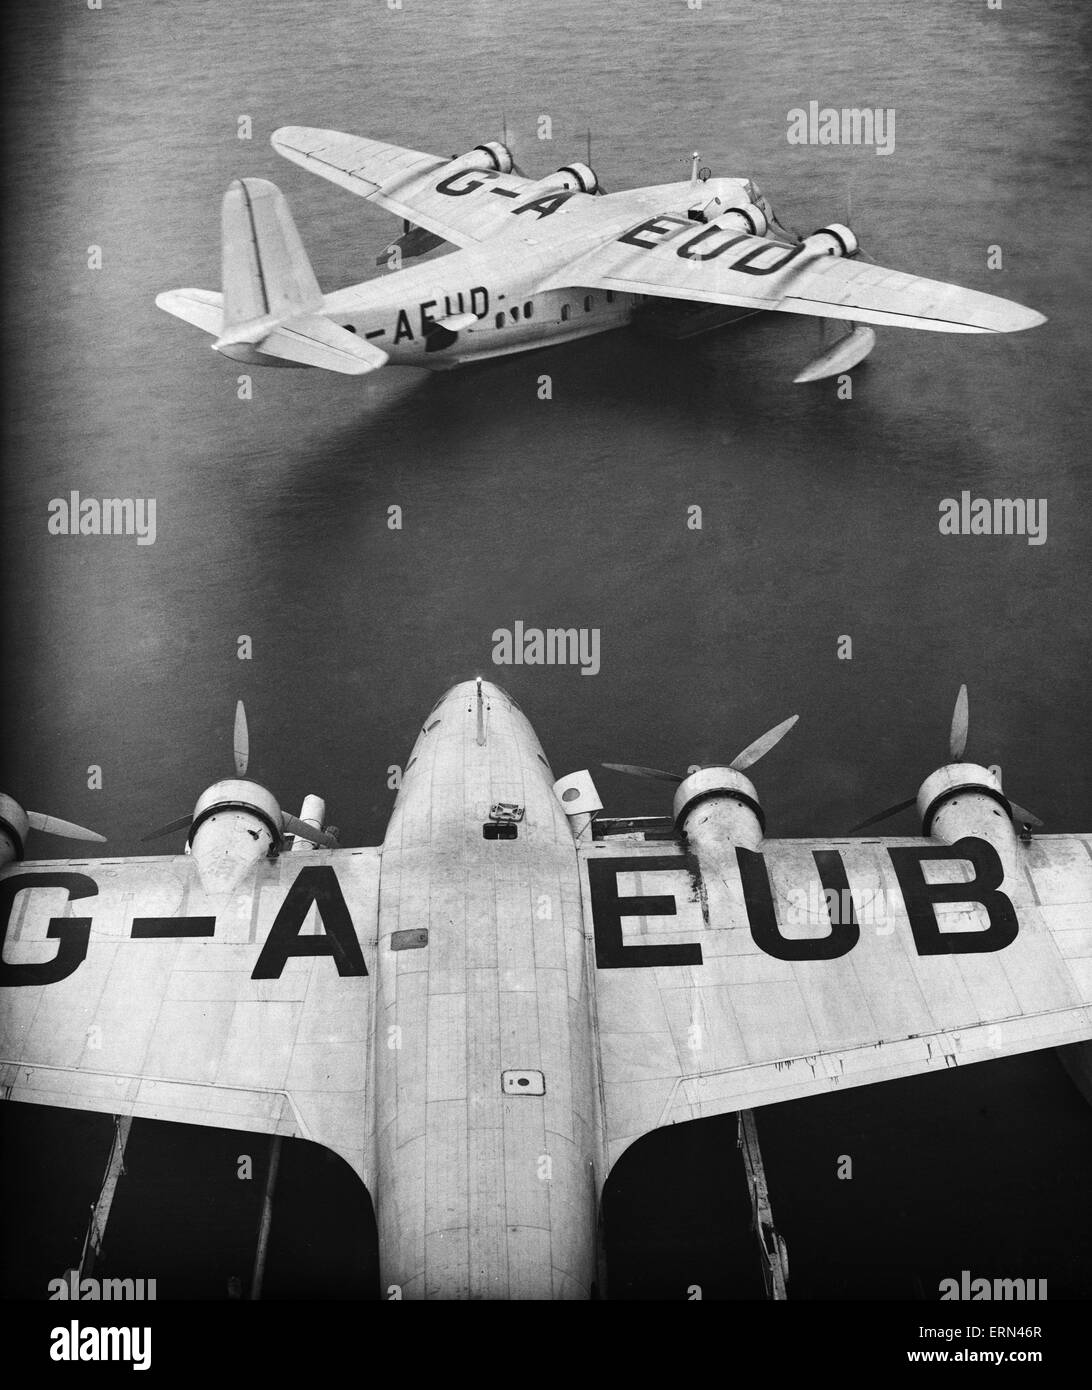 Série d'images pour Daily Herald Feature vol vers l'Australie. 26 juin 1938 Imperial Airways Short Photo Stock